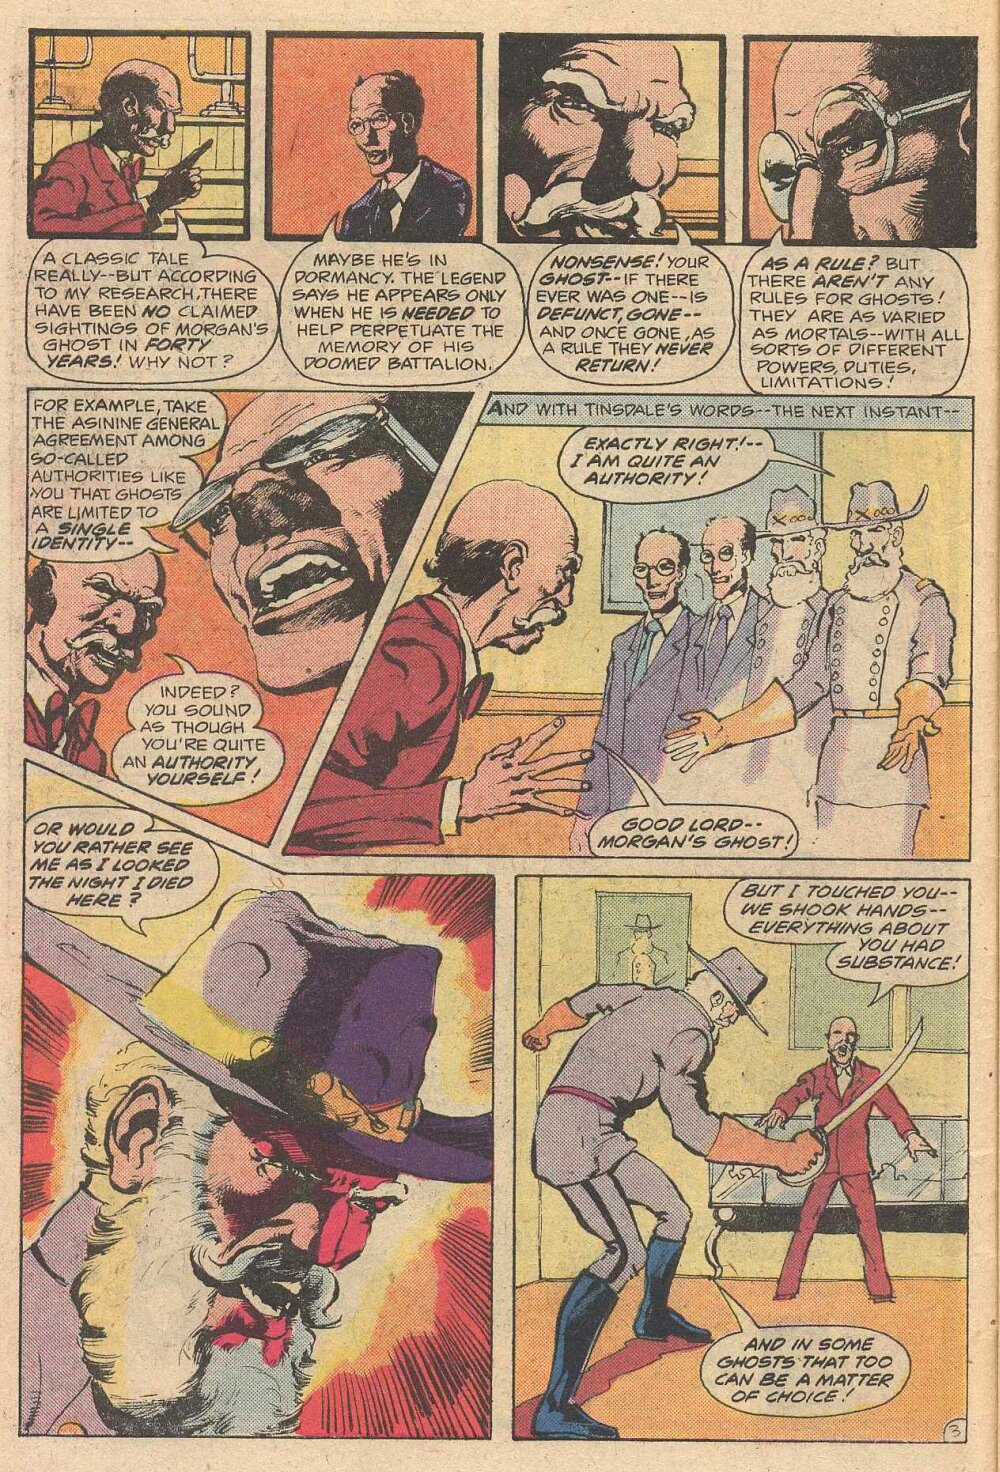 Ghosts (1971) #97 pg.4, art by Mike Nasser.